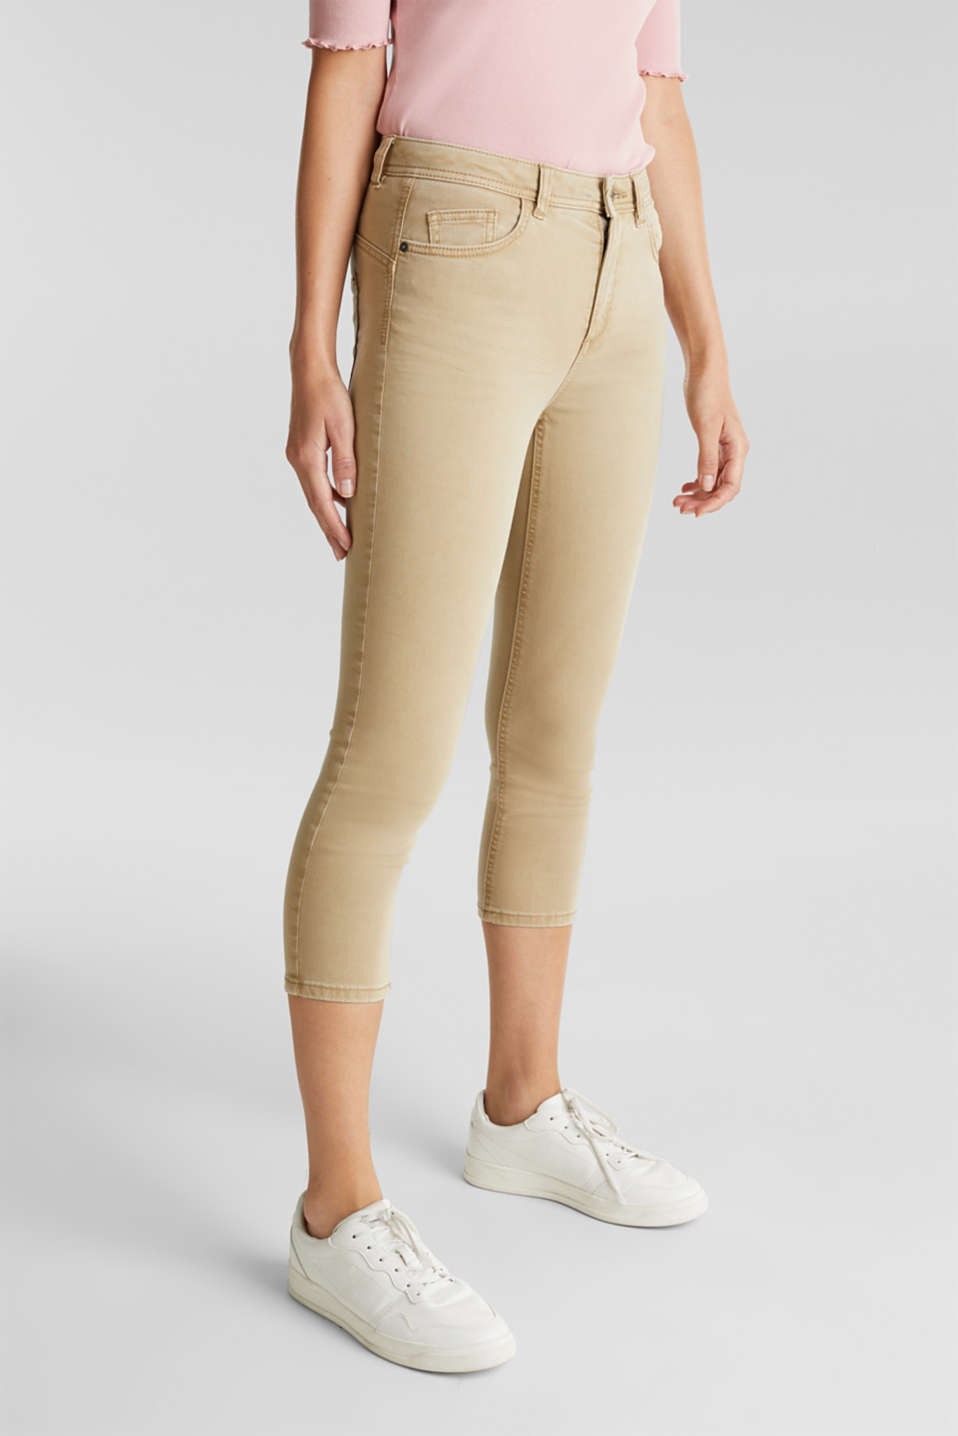 edc - Pantalon corsaire super stretch